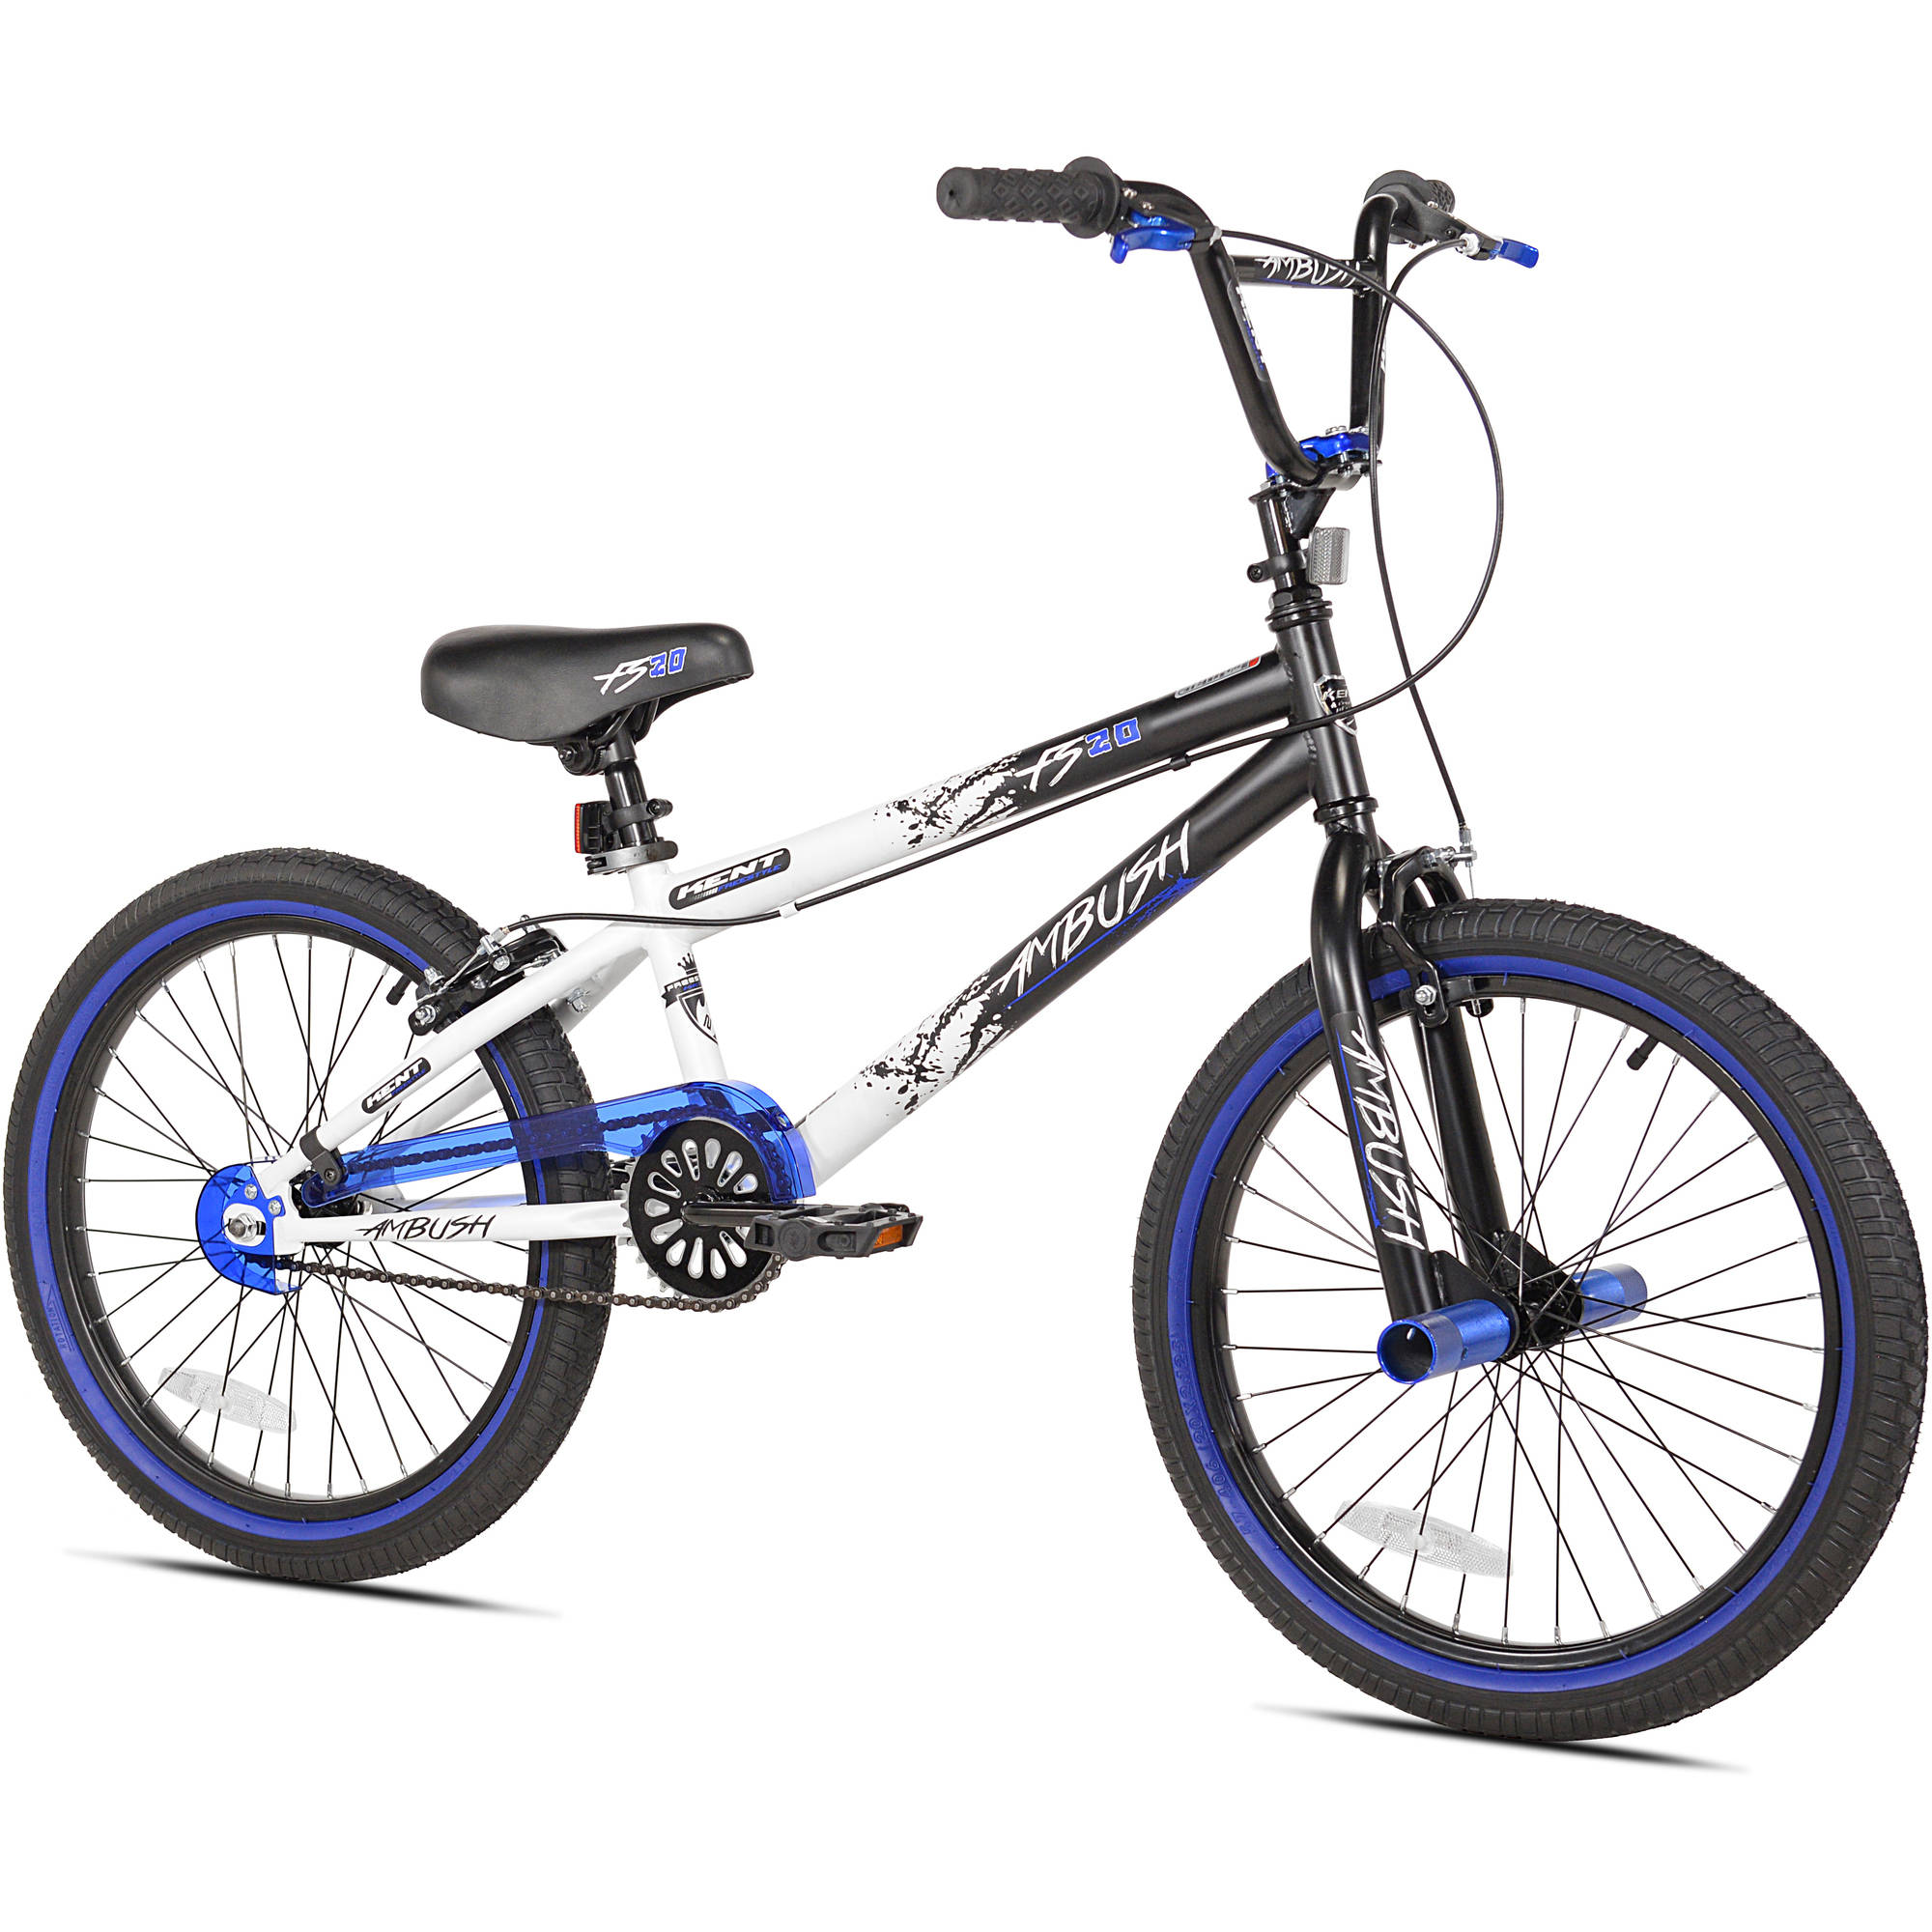 "Kent 20"" Boys', Ambush BMX Bike, Blue, For Ages 8-12"